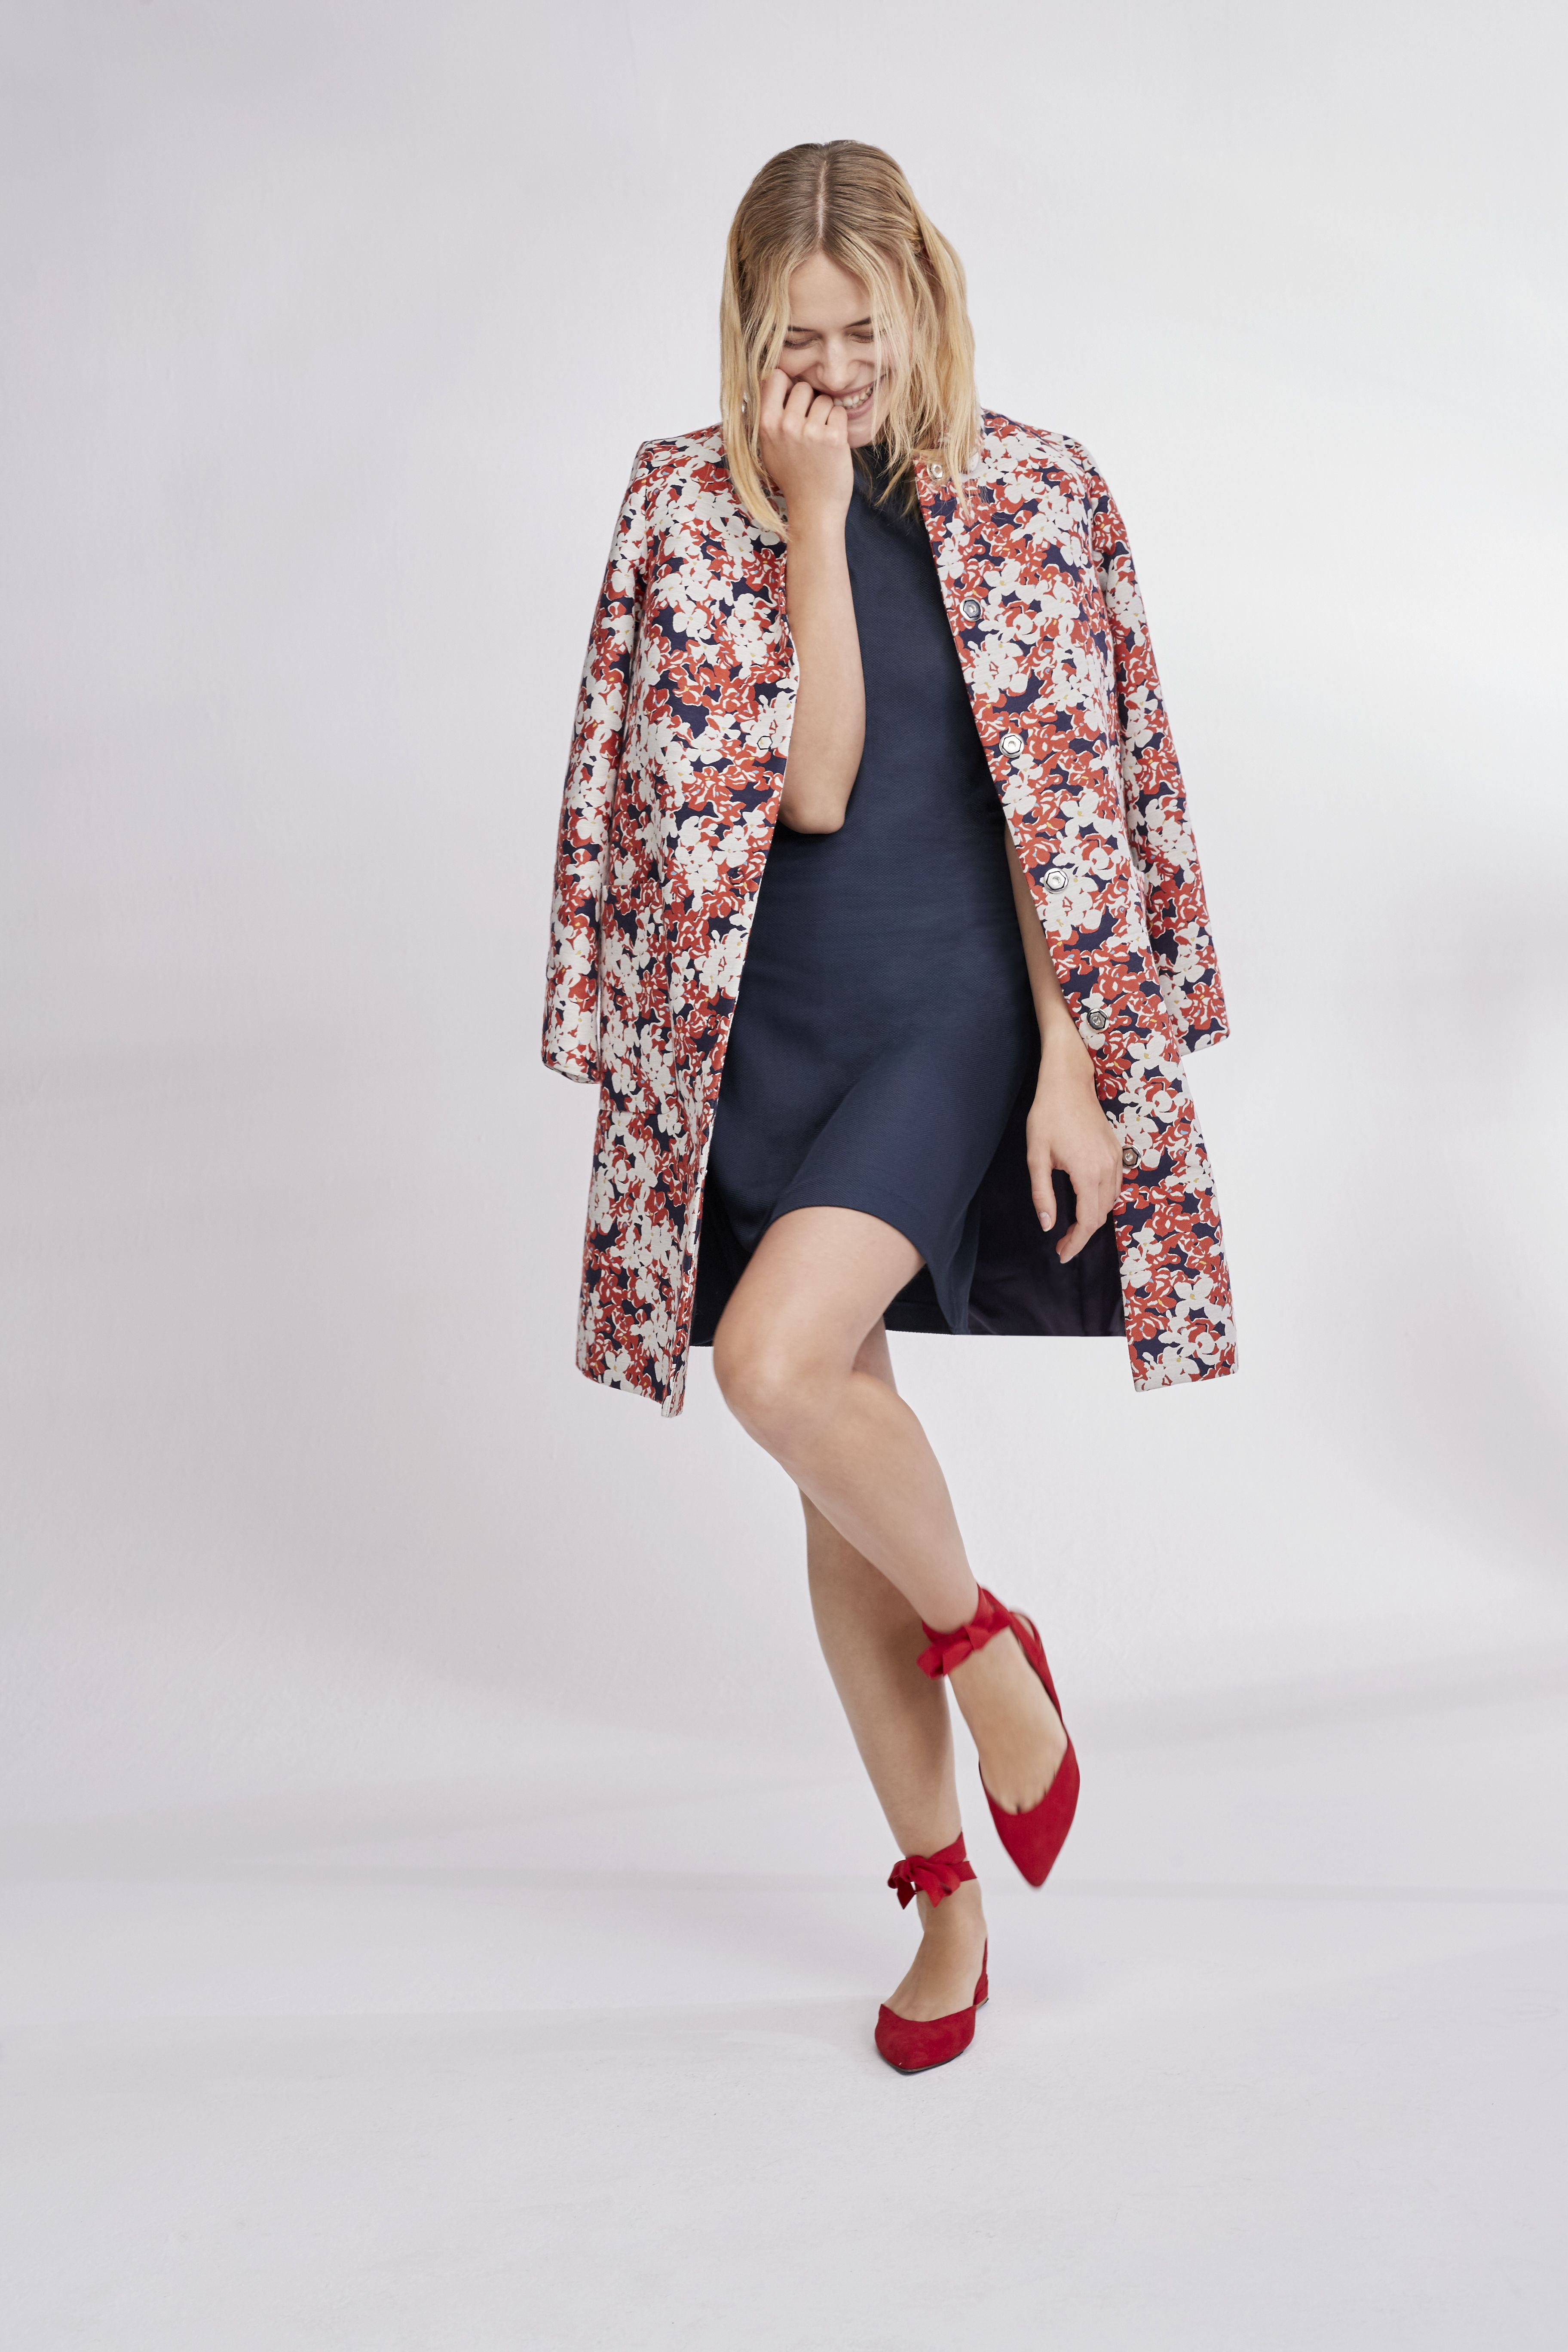 Florals are big for spring, from formal jackets to pretty camis.